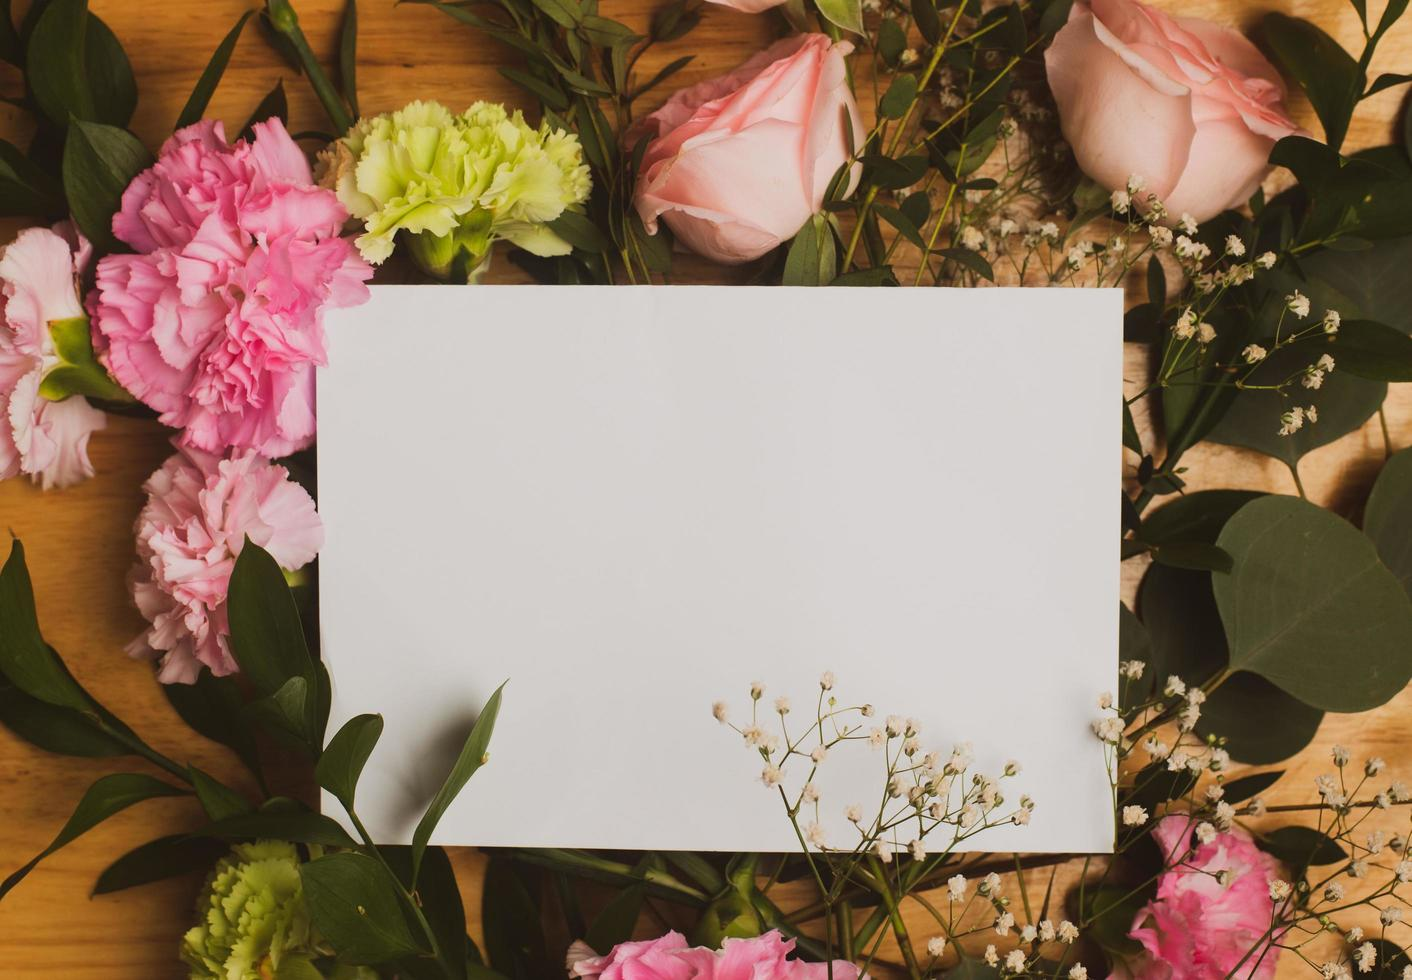 Empty card on flowers photo